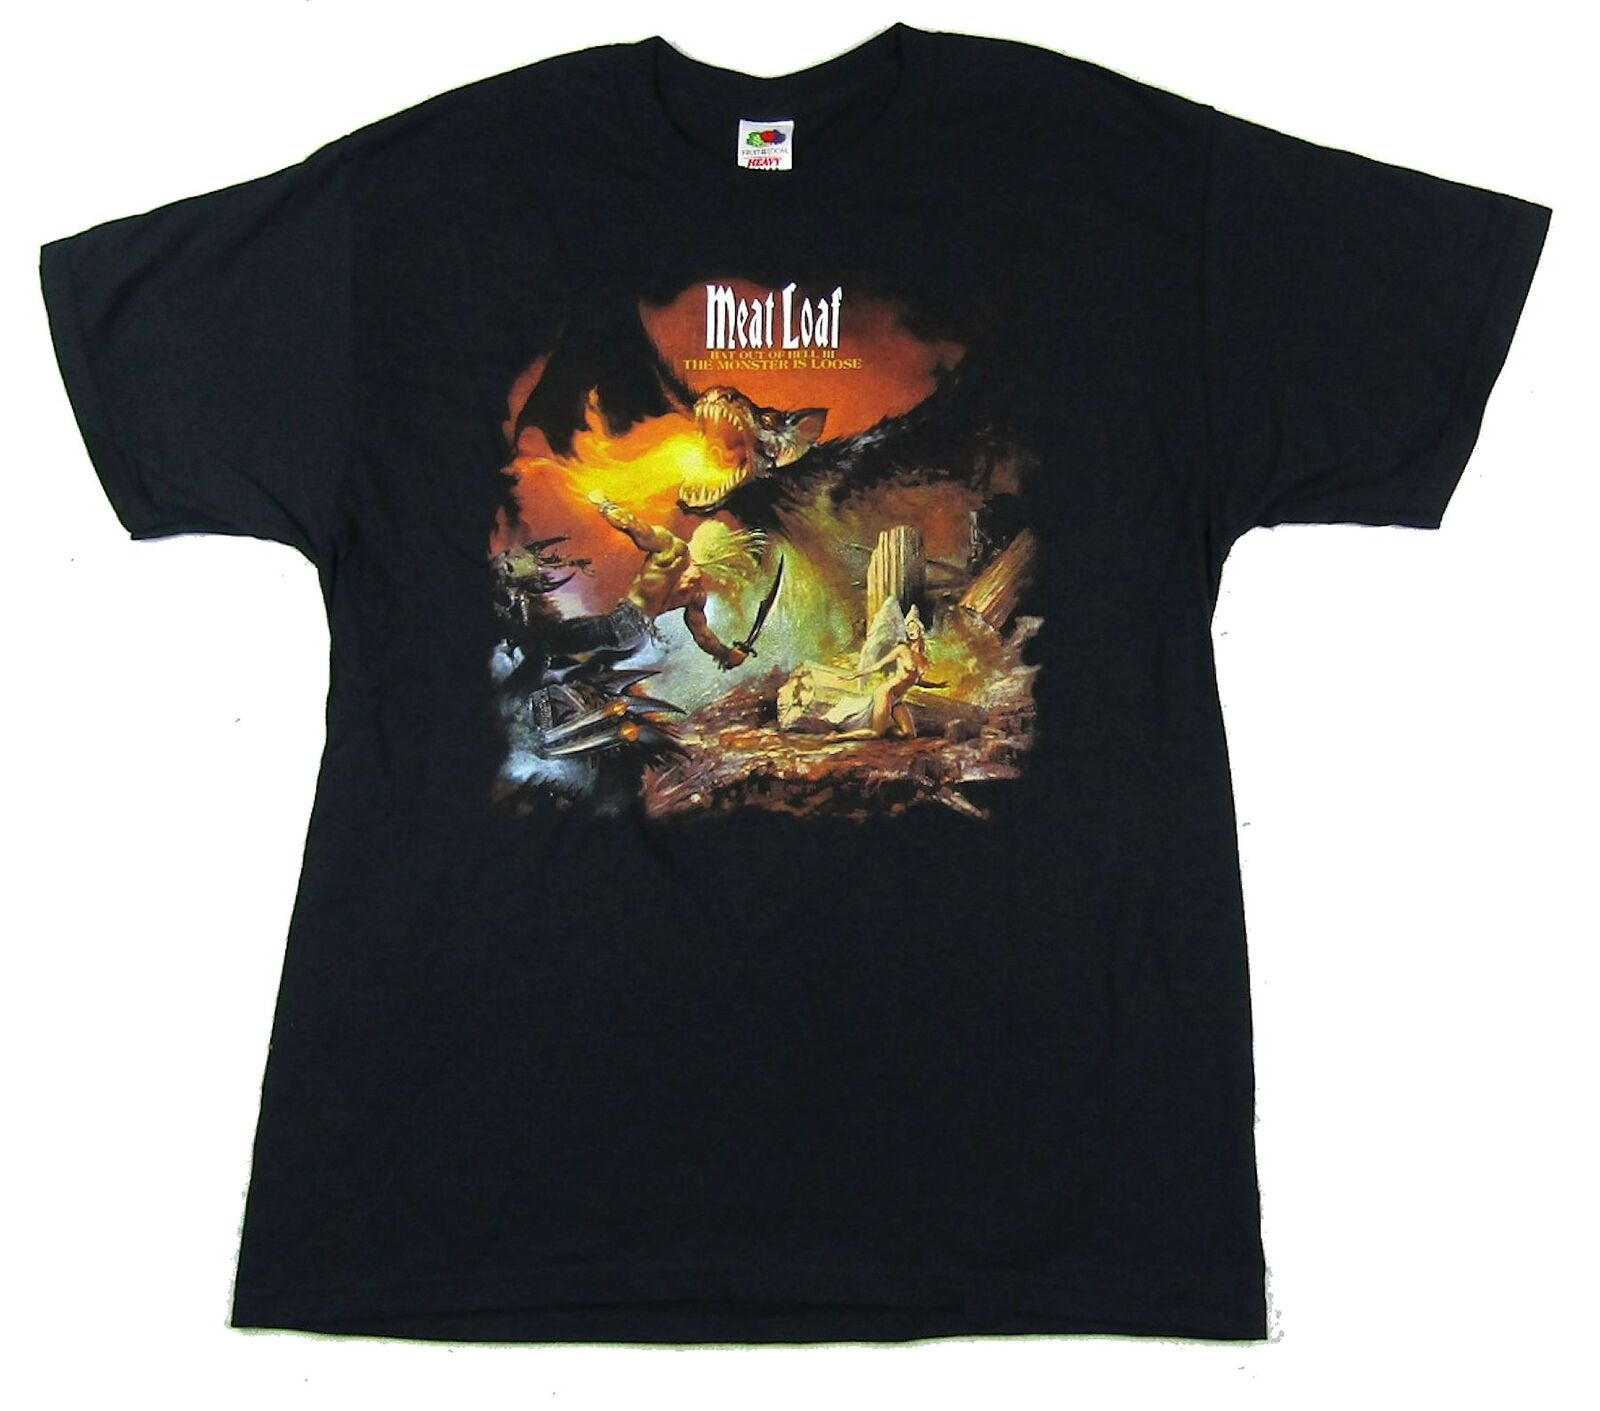 Meat Loaf The Monster Is Loose Black T Shirt New Official Bat Out Of Hell 2 Short Sleeve Tee Shirt Free Shipping cheap wholesale image